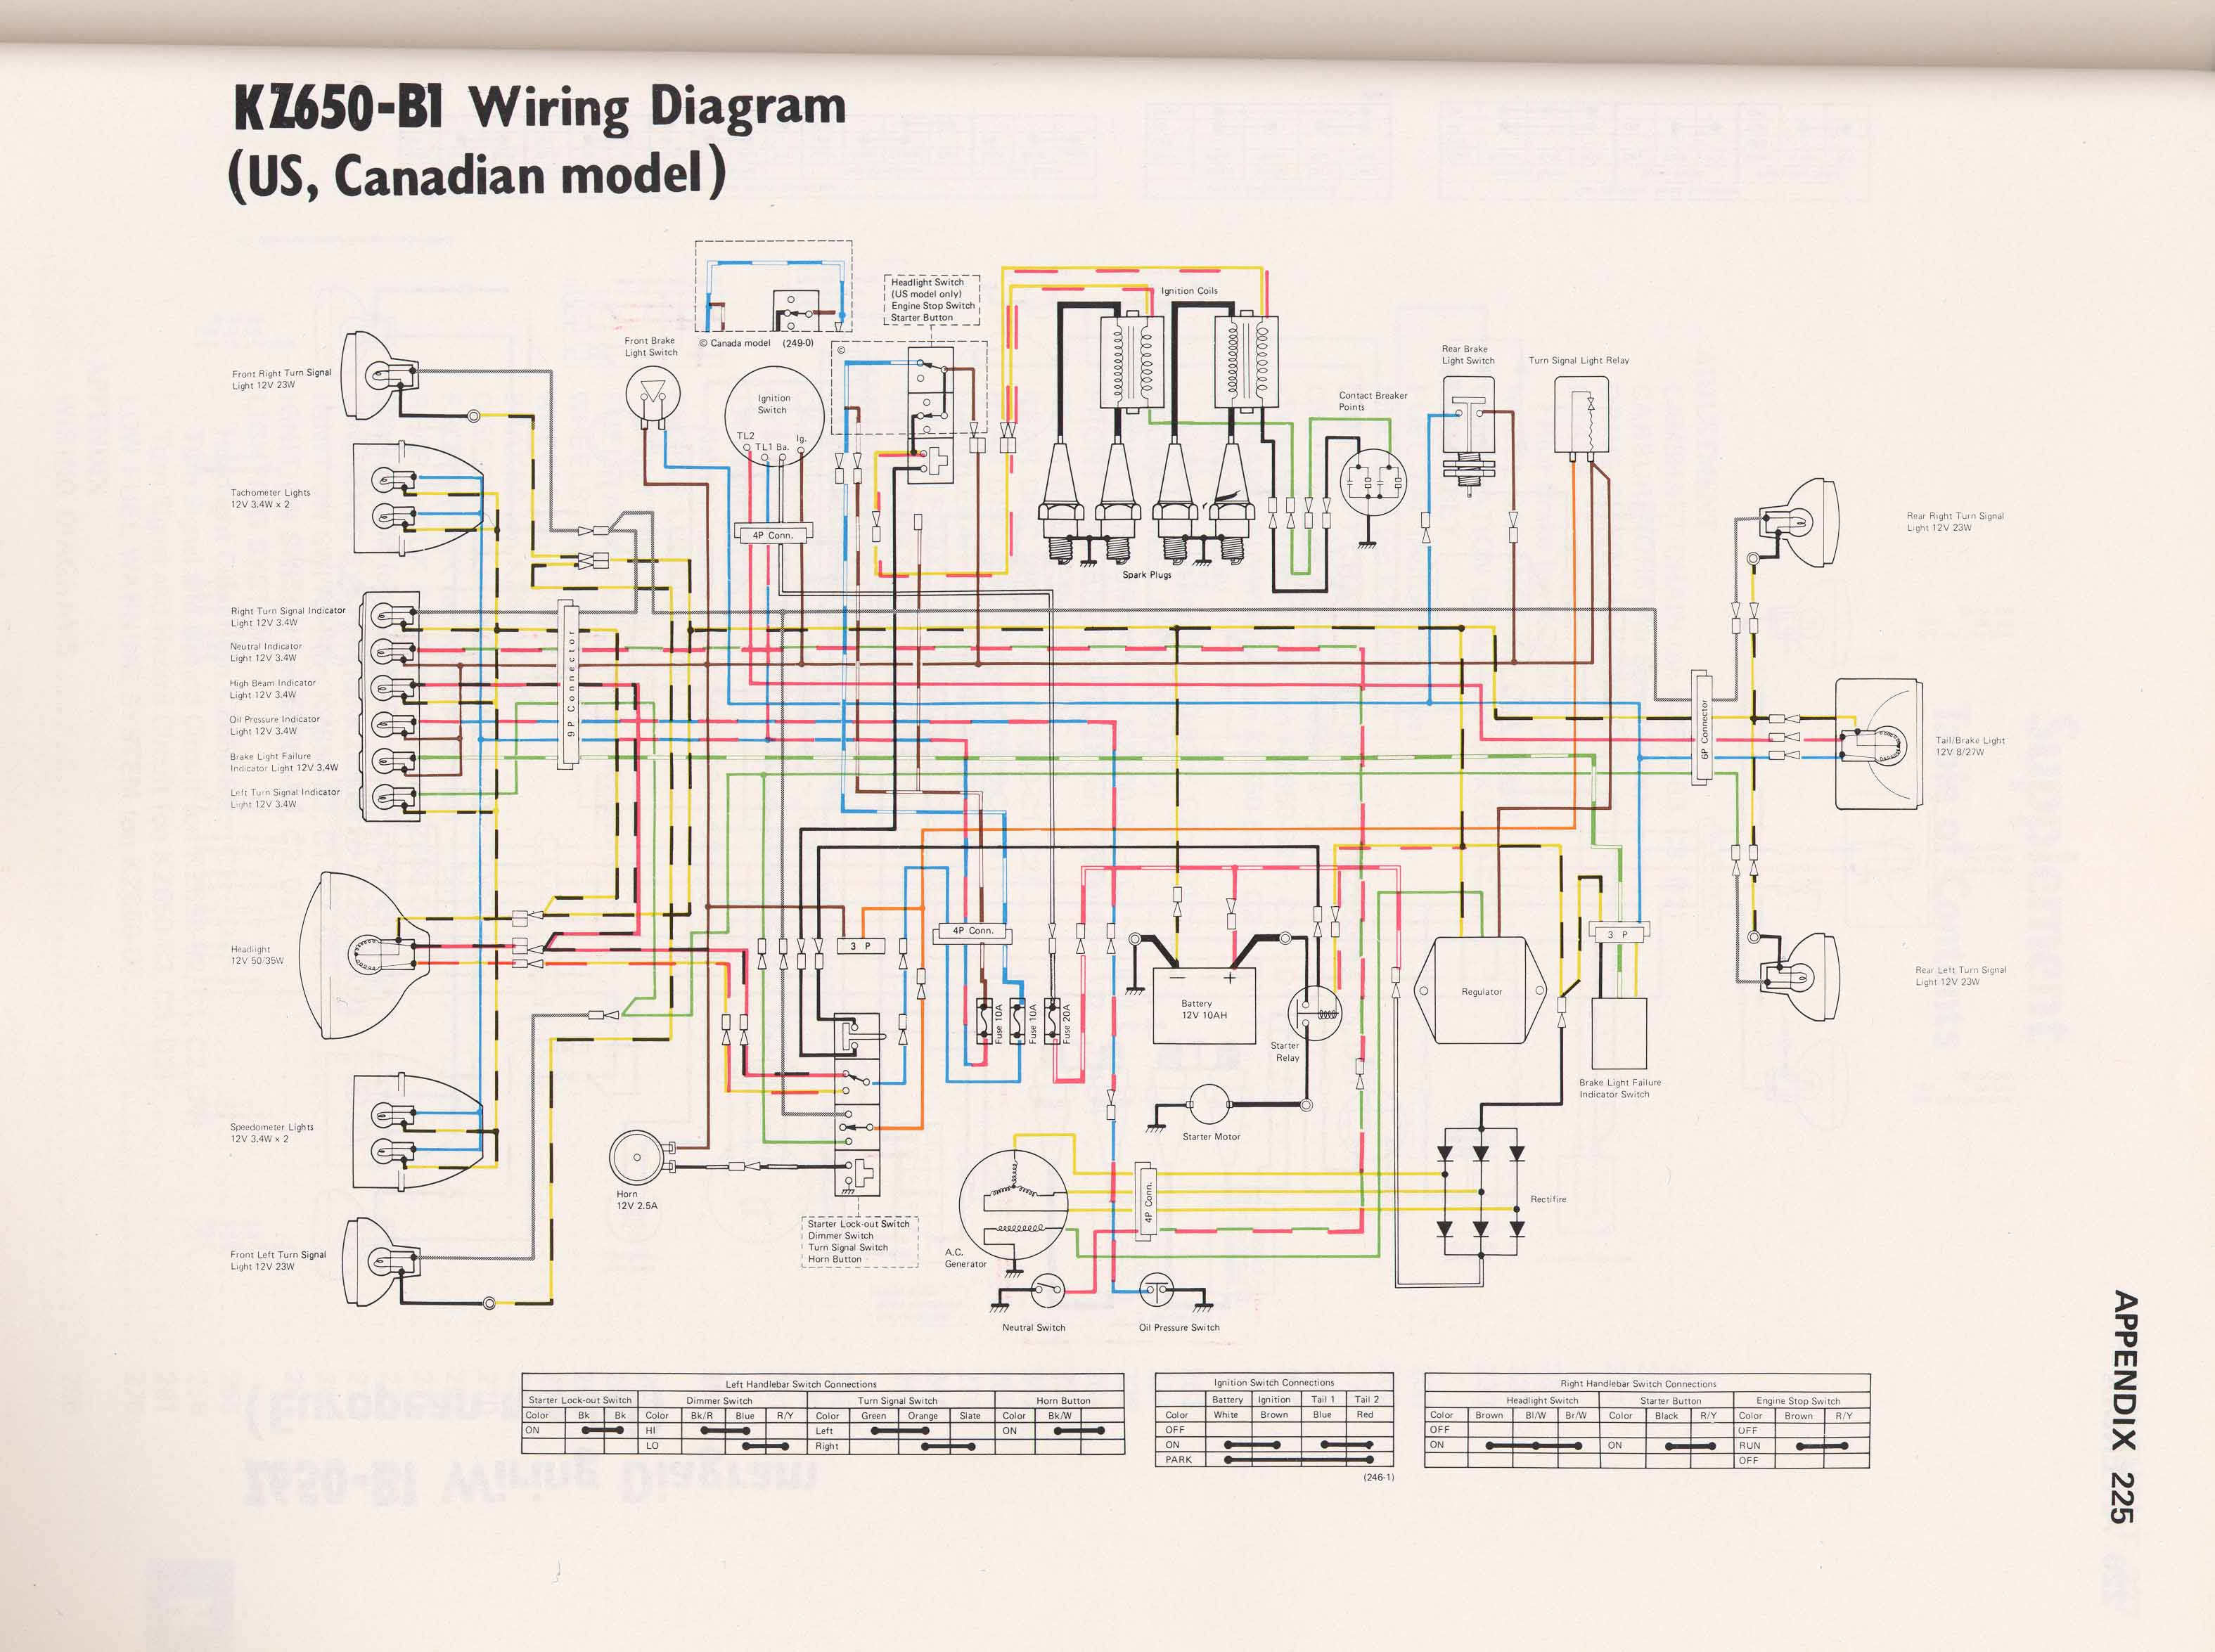 KZ650 B1 kz650 info wiring diagrams ignition wiring diagram at mifinder.co